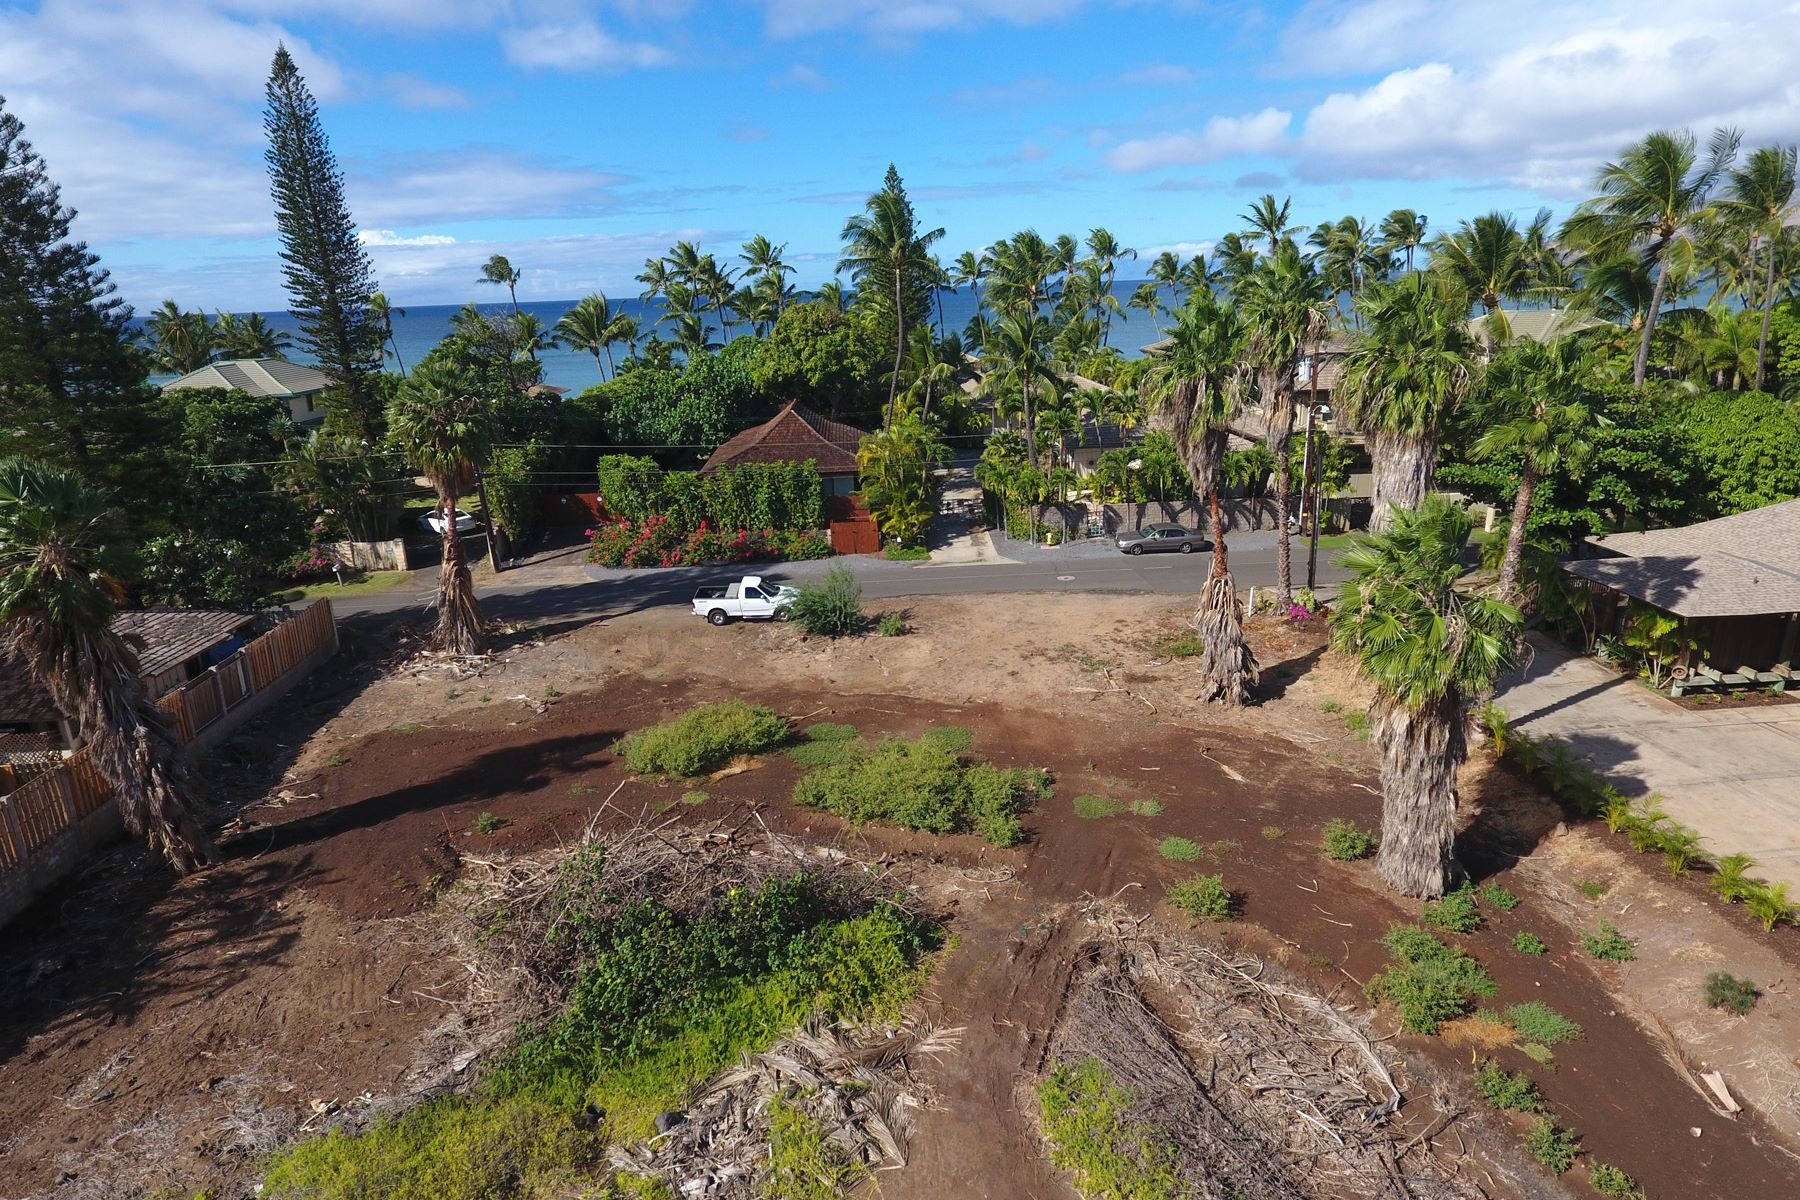 Land for Sale at Vacant lot across the street from white sands beaches-ready to build! 1519 Halama St, Lot 2 Kihei, Hawaii 96753 United States